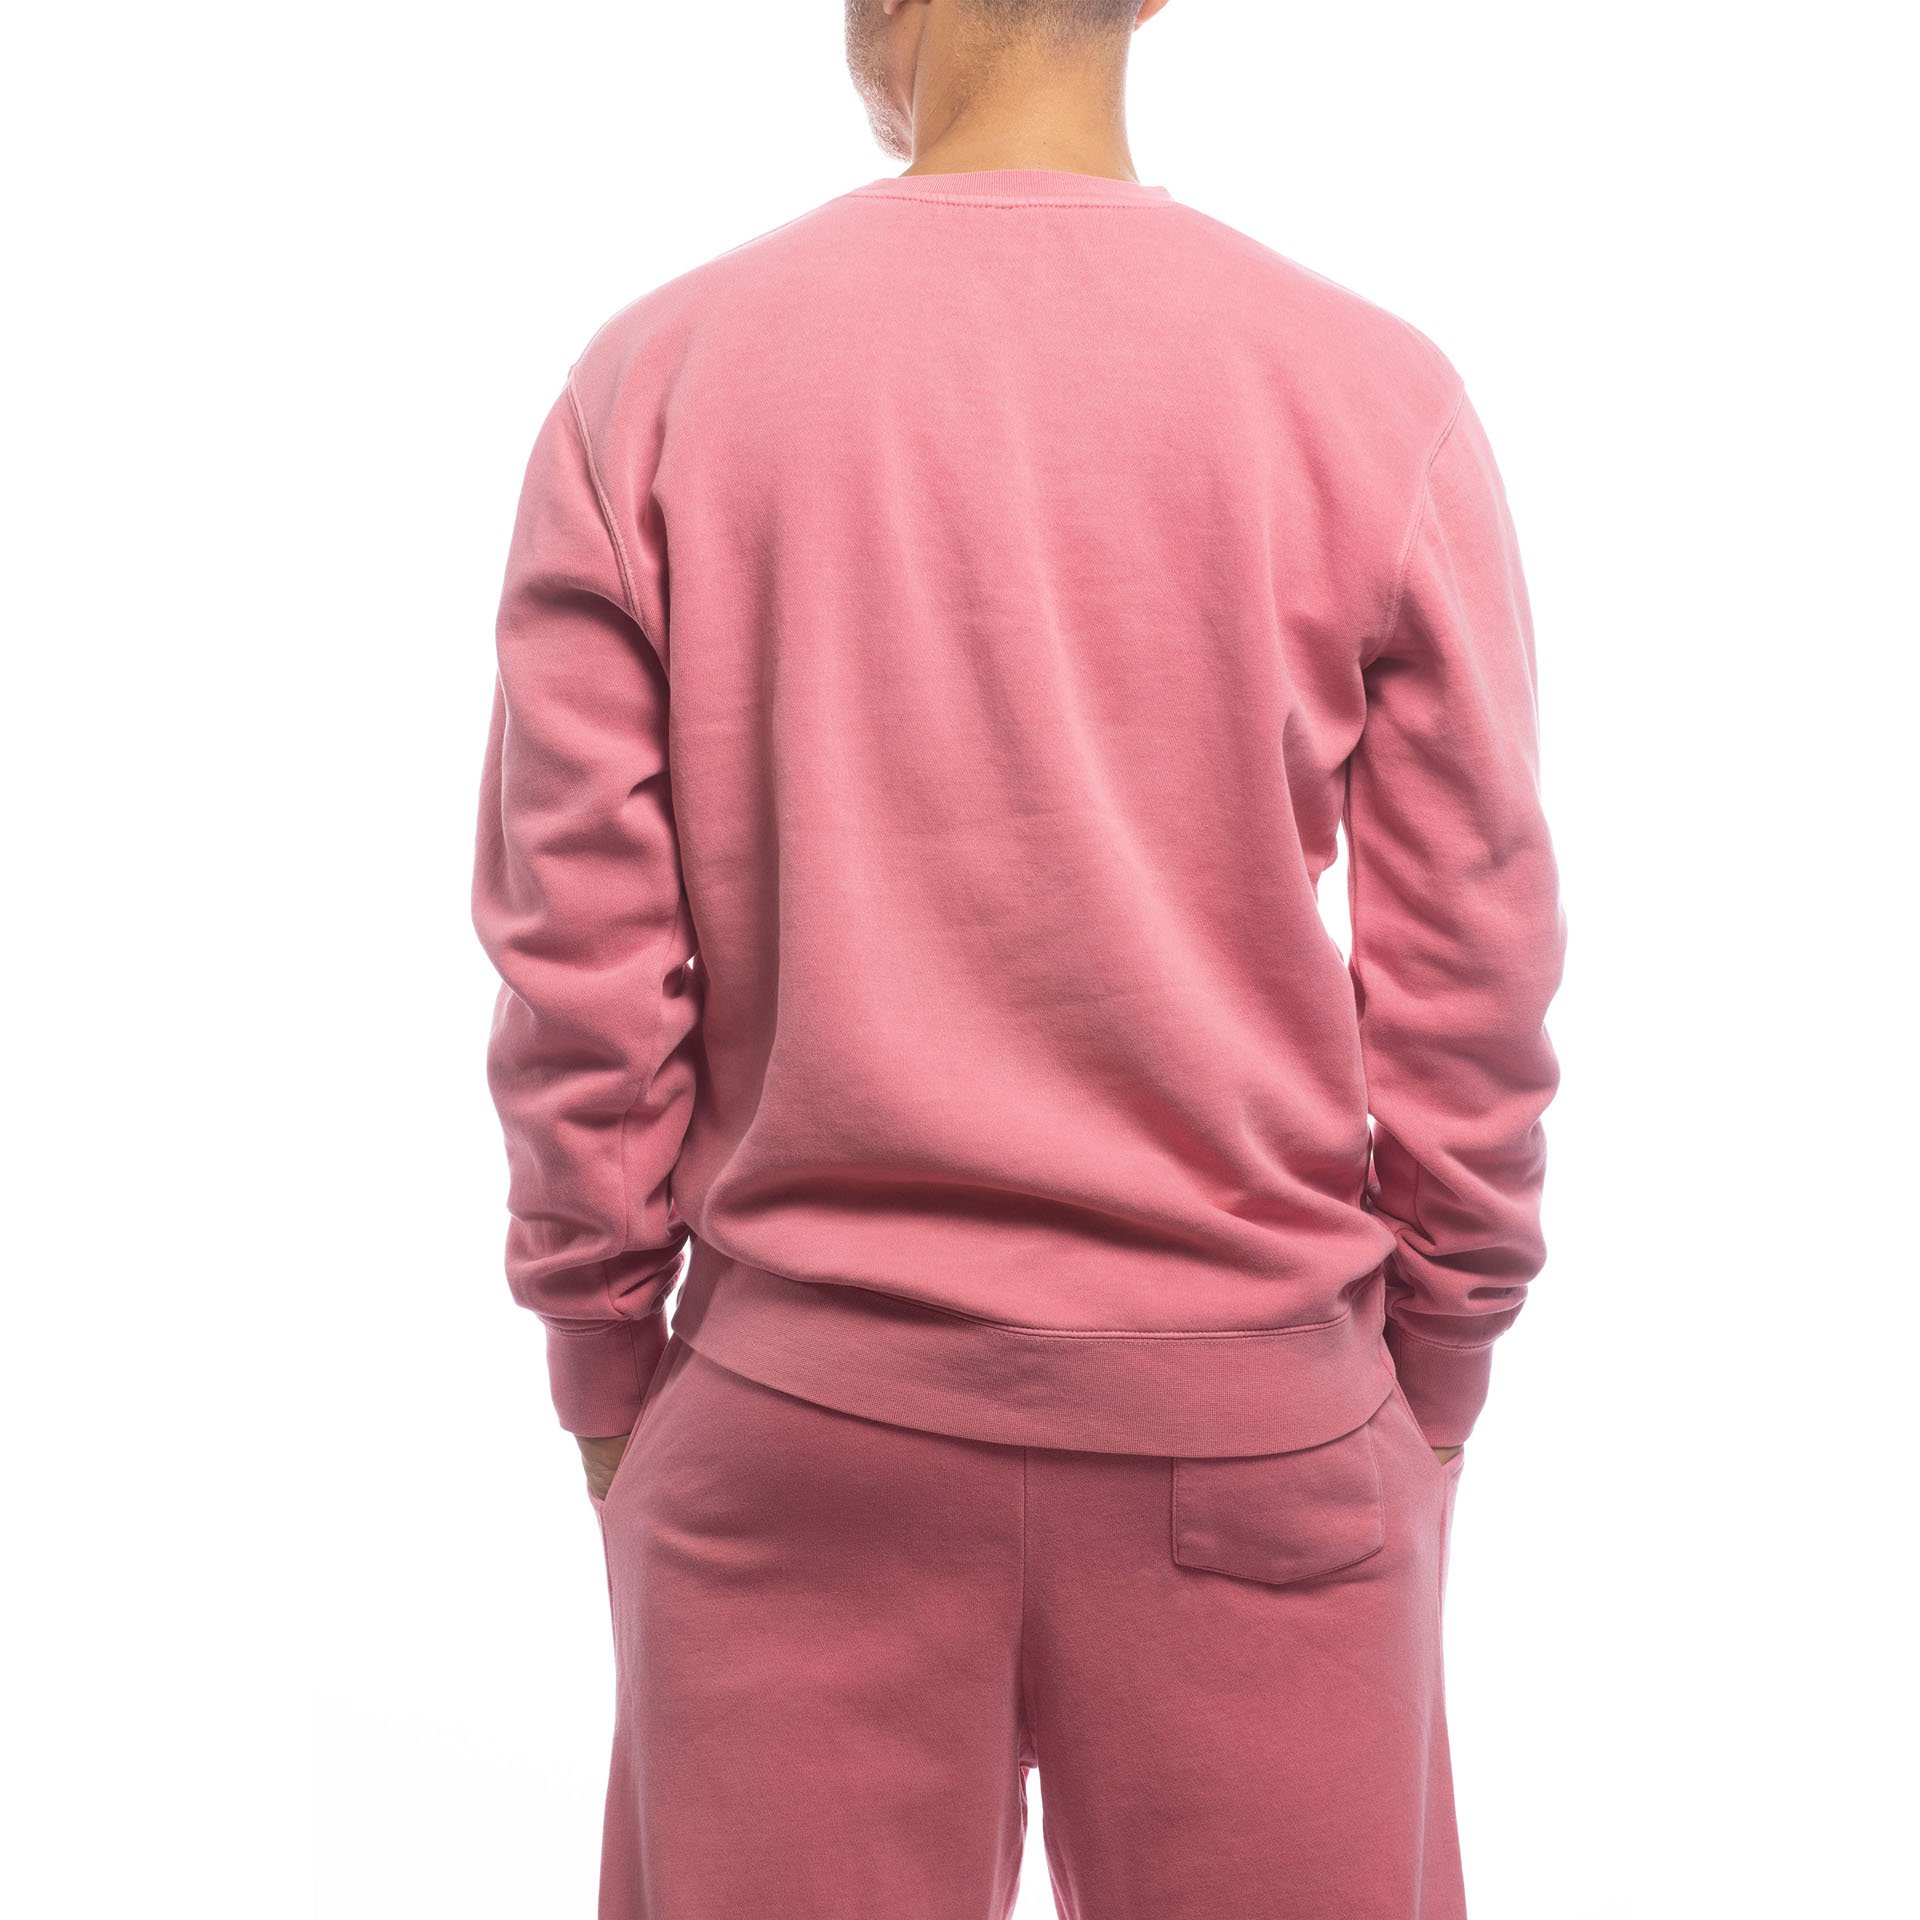 Unisex Upcycled Crew - Made For The People - Pink